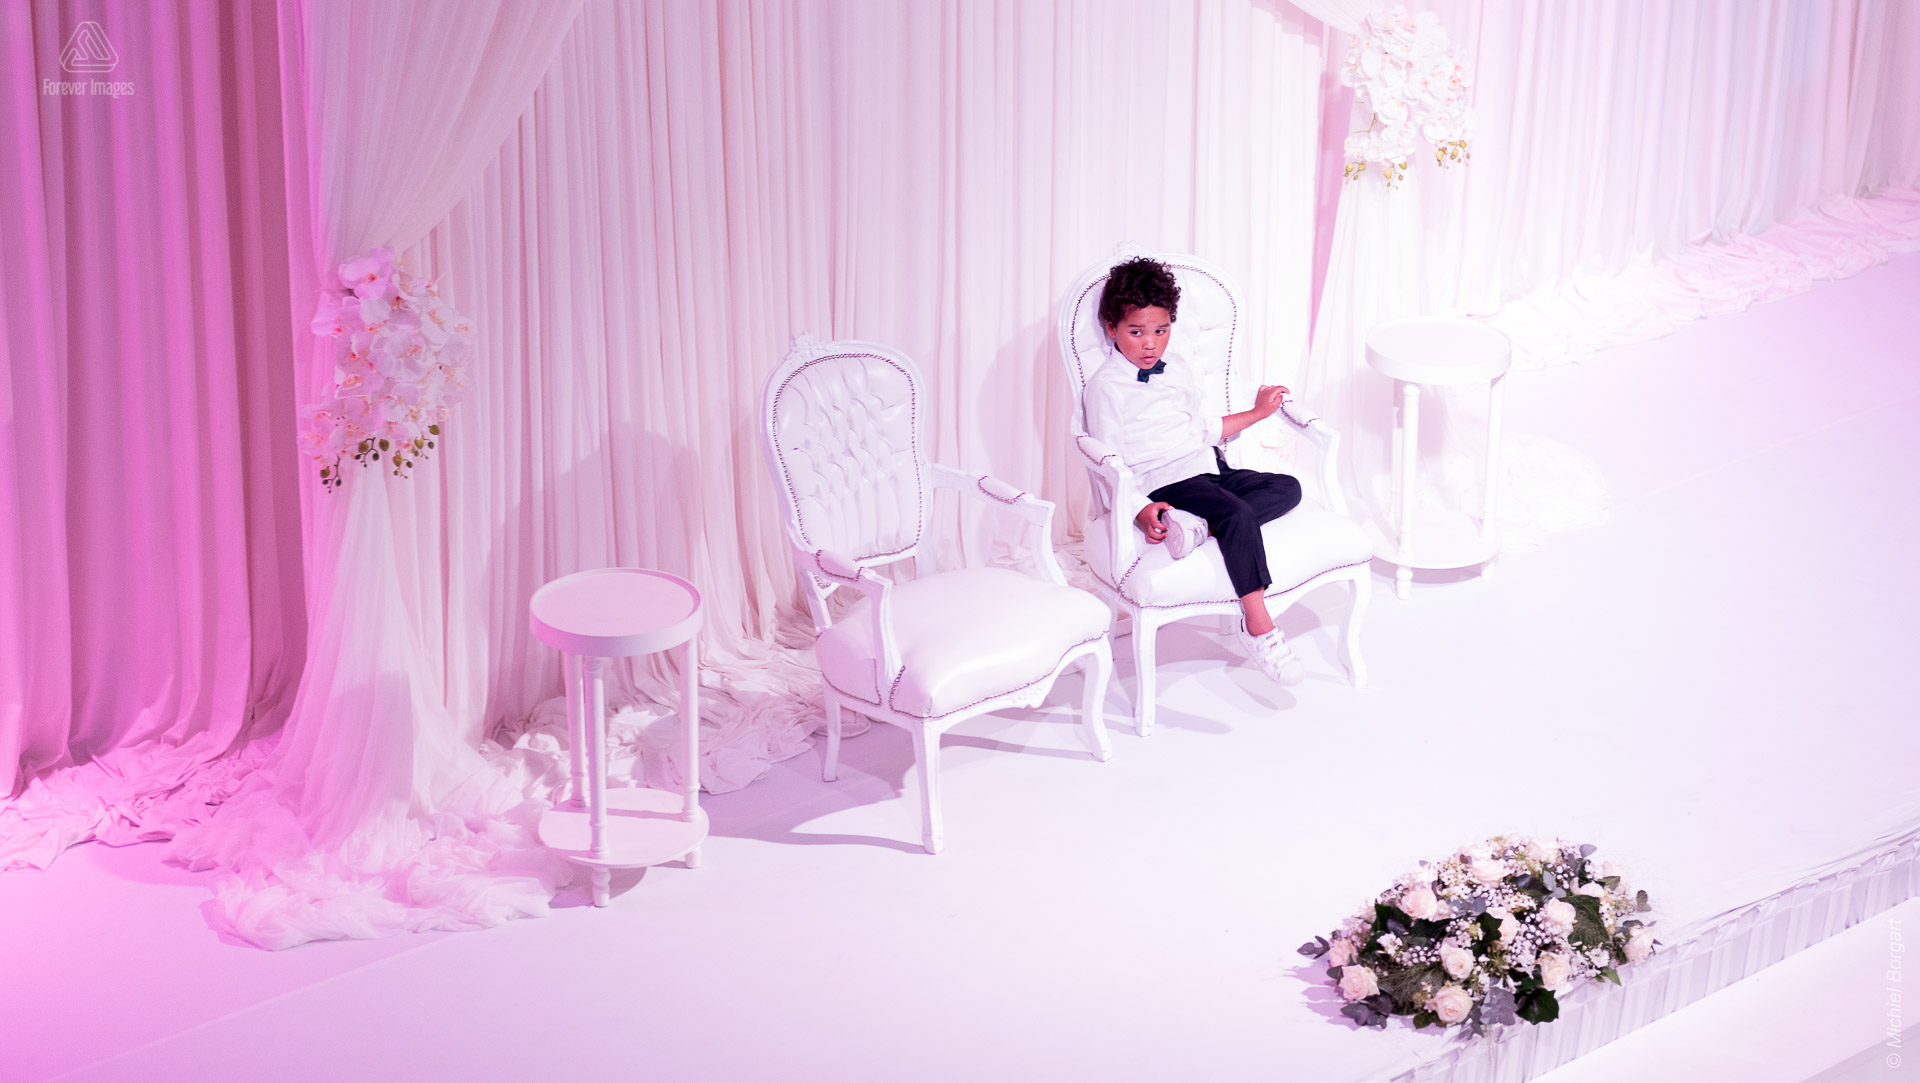 Bridal photo in which the son is married on the wedding chairs | Clarence Sabrina Versteeg | Wedding Photographer Michiel Borgart Forever Images.